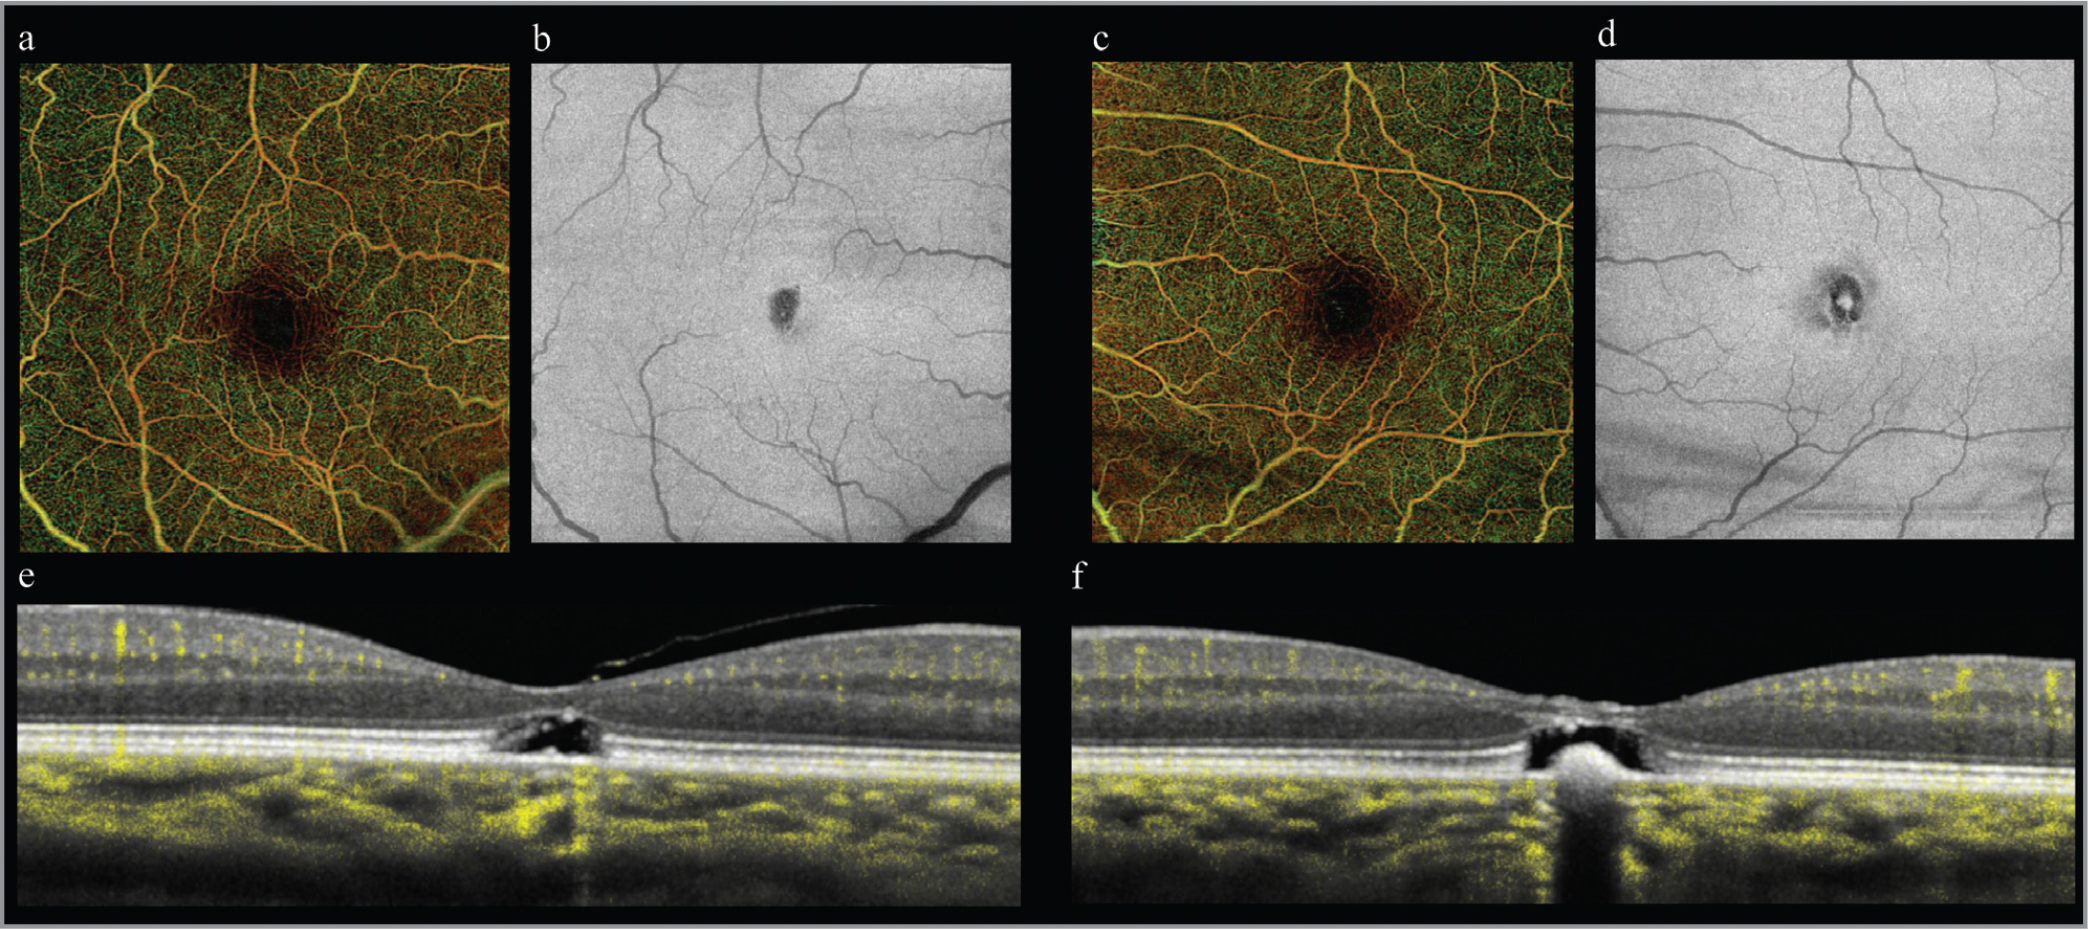 Full retina color depth encoded en face optical coherence tomography angiography (OCTA) shows relatively symmetric foveal avascular zones and slight vessel tortuosity in the right (a) and left (c) eyes. Structural en face OCT demonstrates loss of reflectivity in the right eye (b) and left eye (d), with central reflectivity in the left eye corresponding to retinal pigment epithelium hyperplasia. Ten-degree dense B-scan OCTA images show high-resolution structure of the right (e) and left (f) eyes, with OCTA signal overlaid in yellow showing a normal superficial capillary plexus and deep vascular complex. There is slight hypertransmission of signal in the fovea of the right eye (e) due to retinal pigment epithelium (RPE) thinning and blockage of signal in the fovea of the left eye (f) due to RPE hyperplasia.